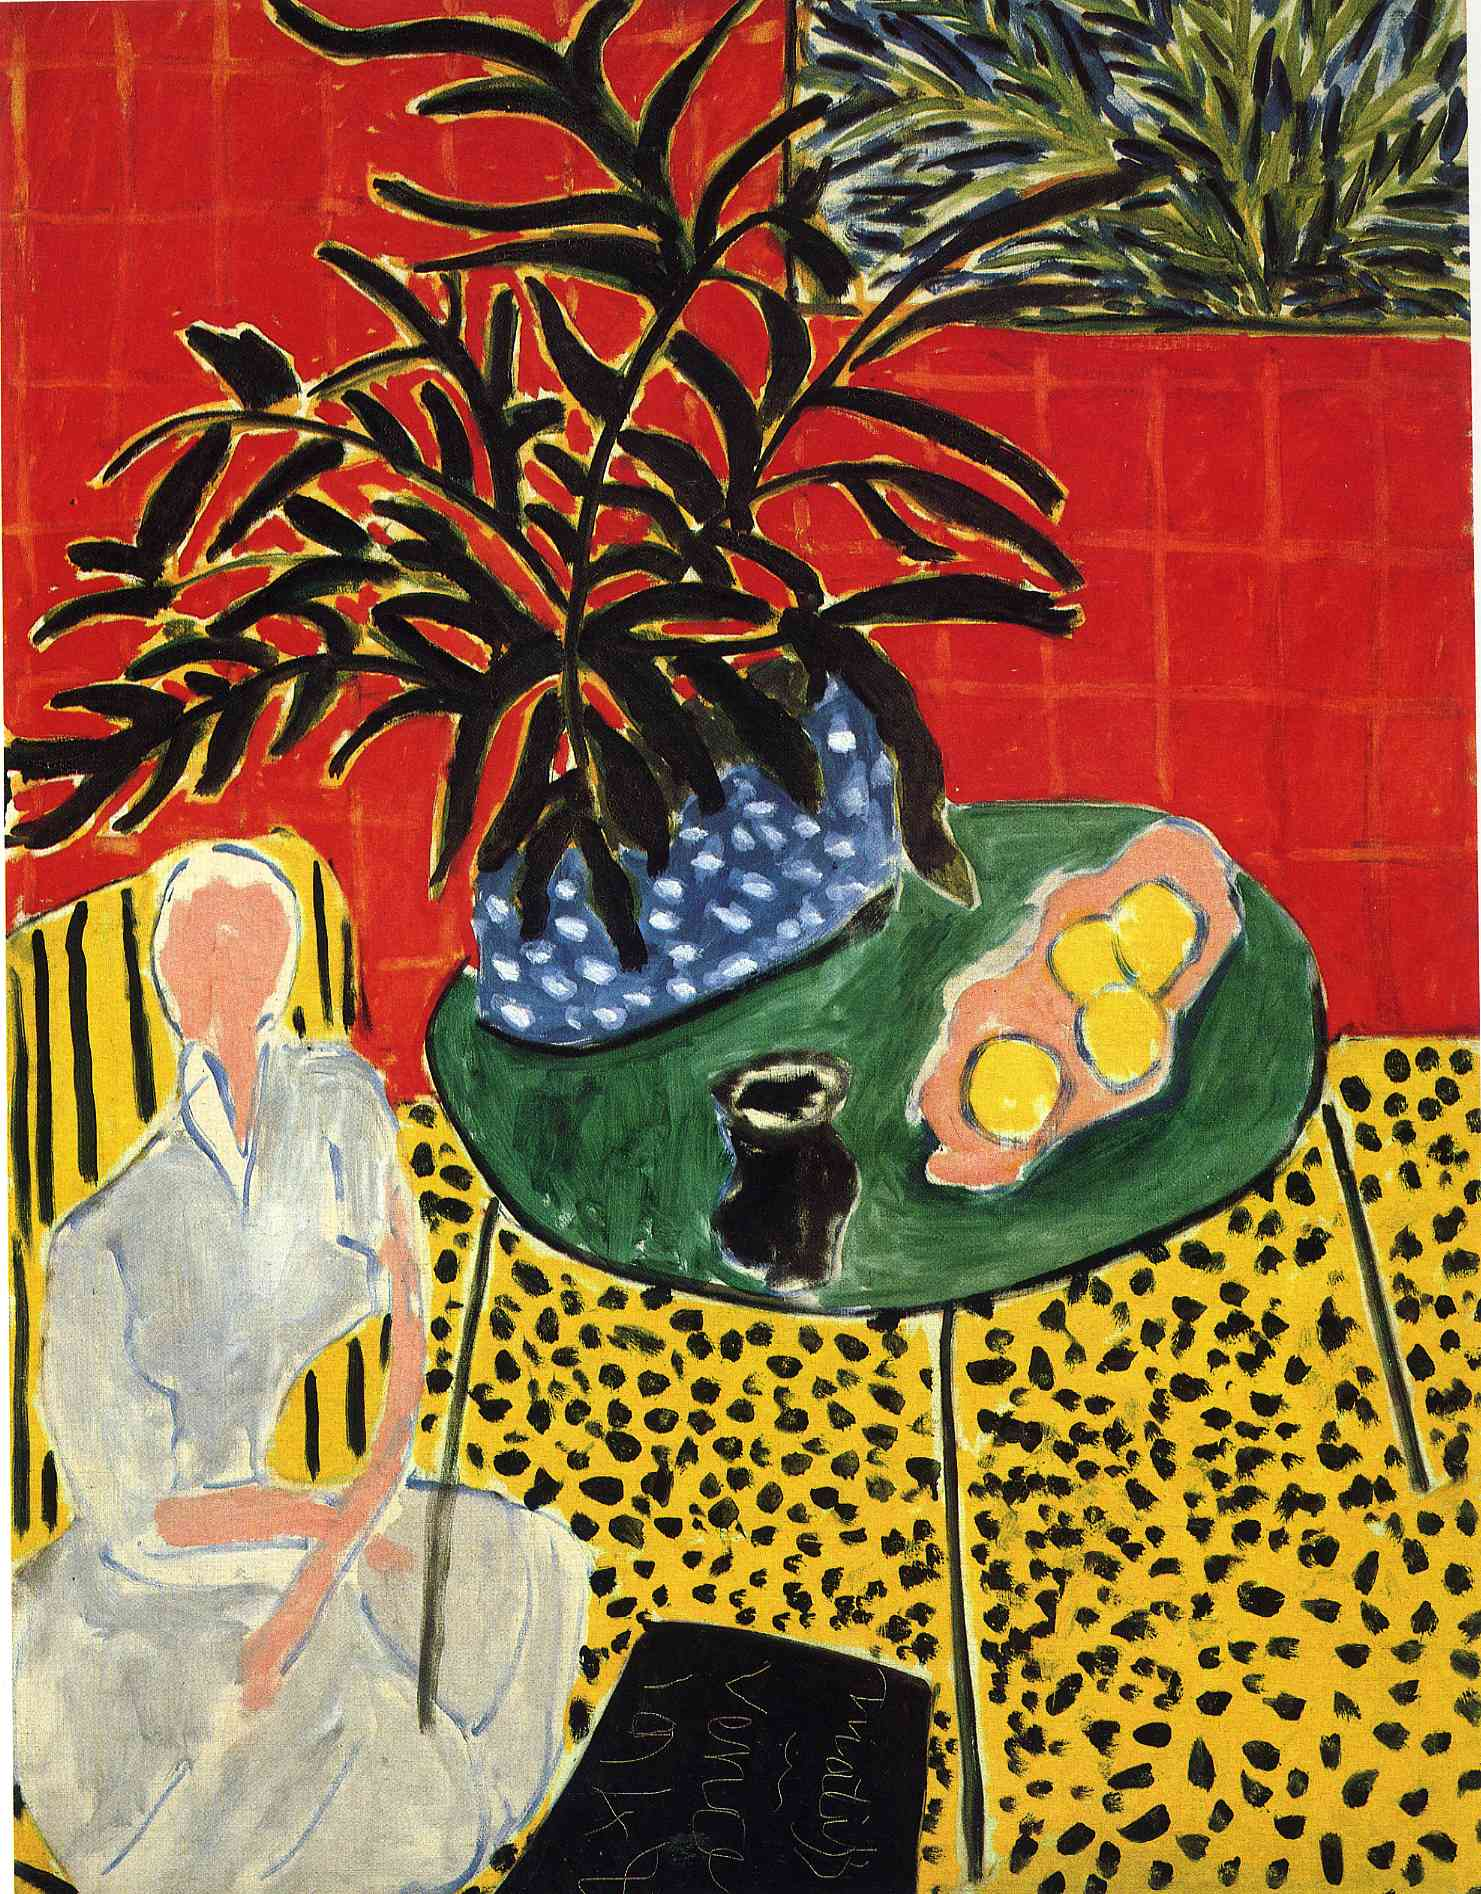 Henri Matisse - Interior with Black Fern 1948